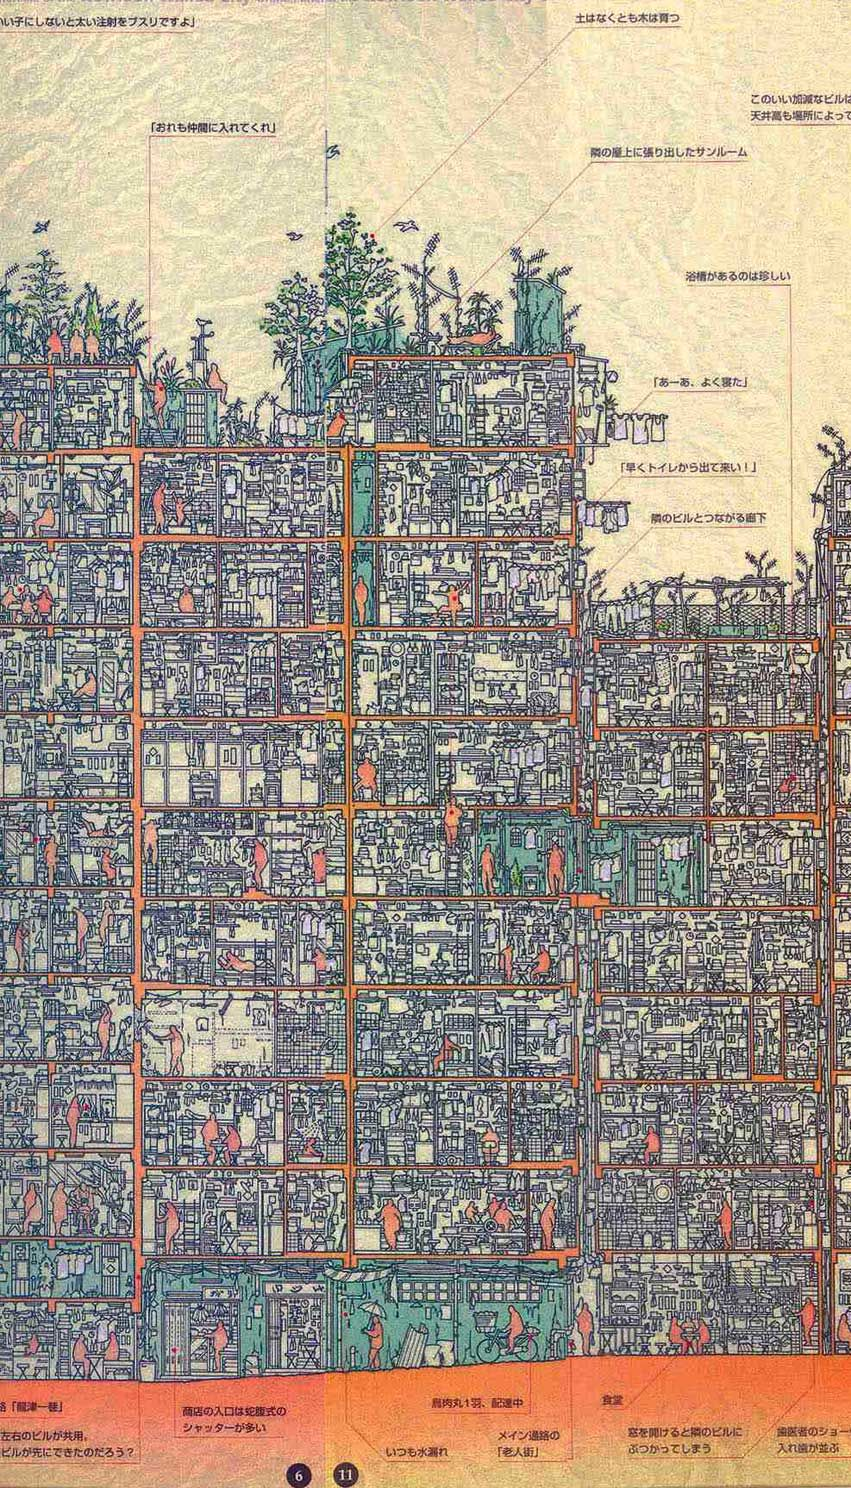 Kowloon Walled City Map httpwwwhongkongbuzzcommust seekowloon city walled park Kowloon